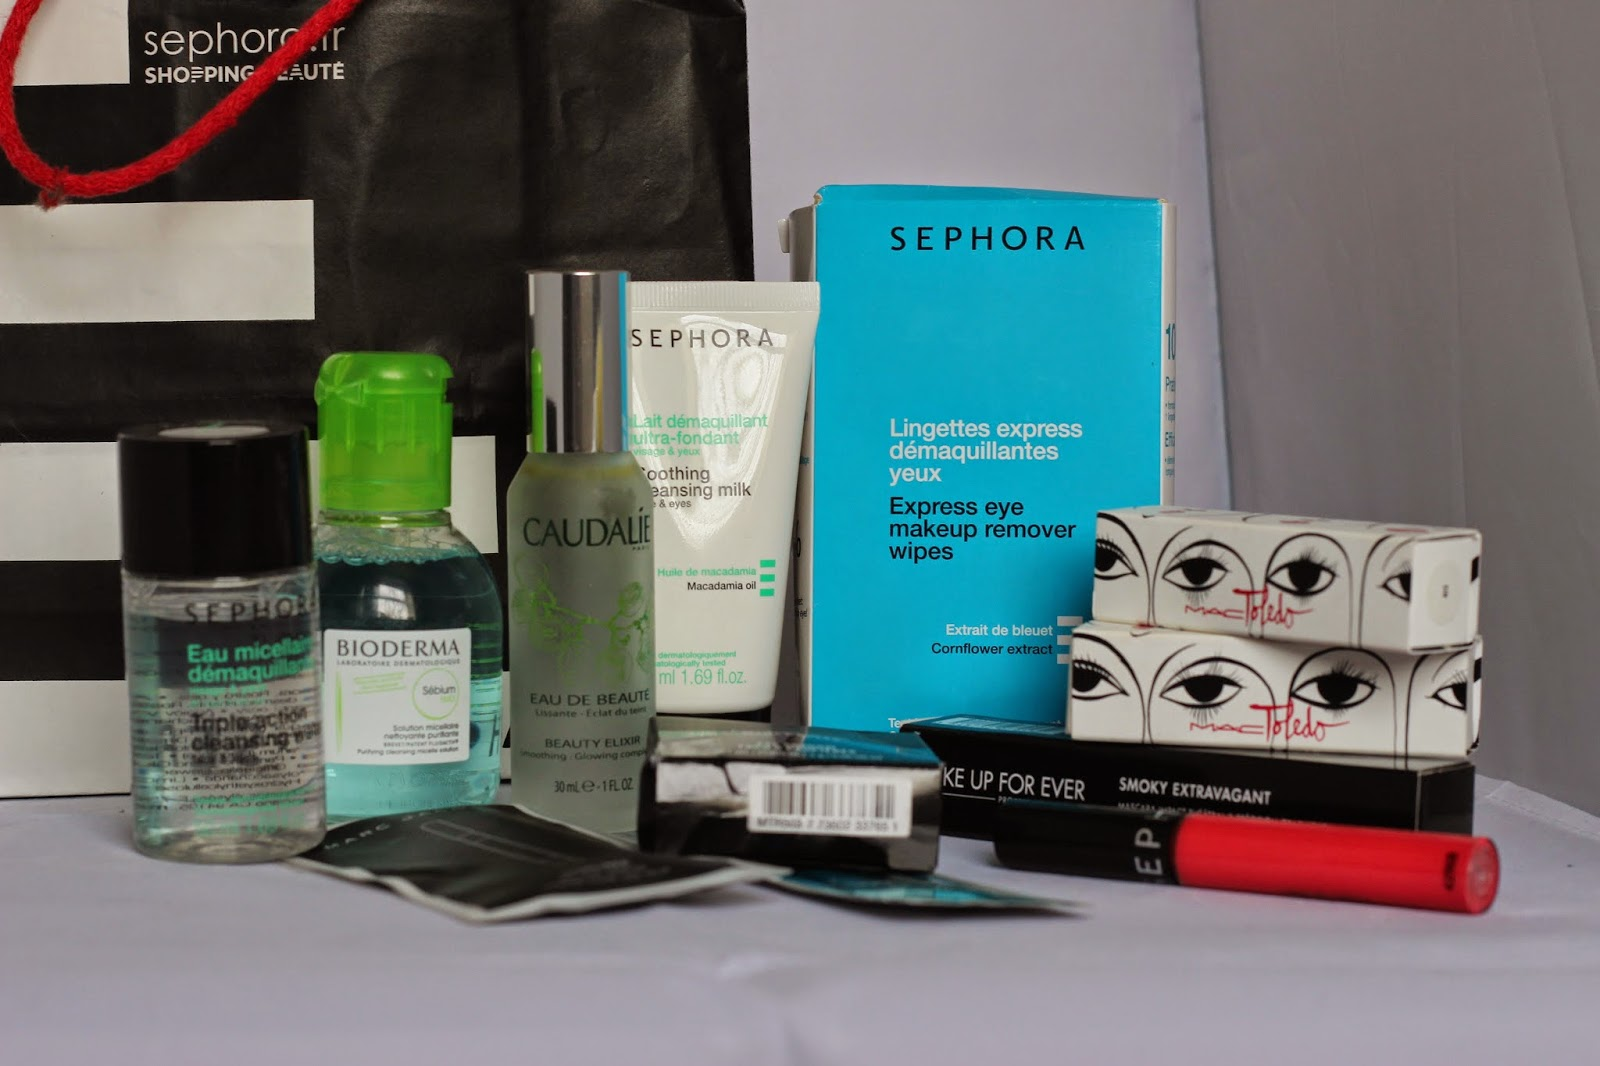 Sephora Paris